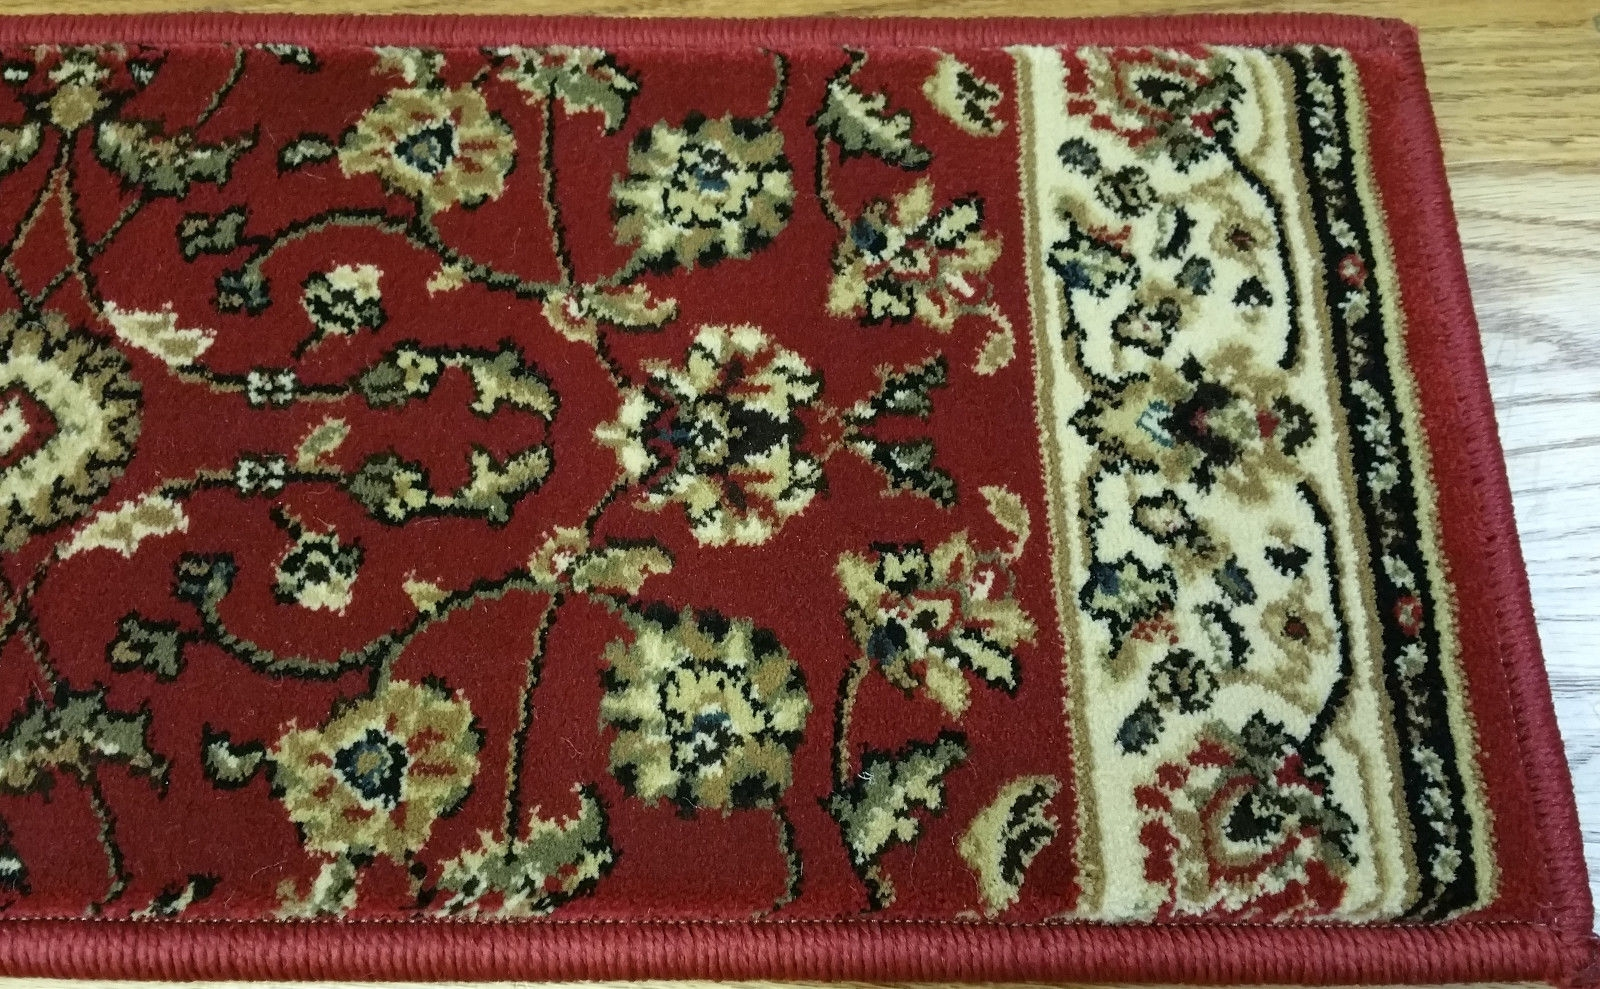 Rug Depot 13 Oriental Carpet Stair Treads 26 X 95 Staircase Pertaining To Oriental Rug Stair Treads (#16 of 20)